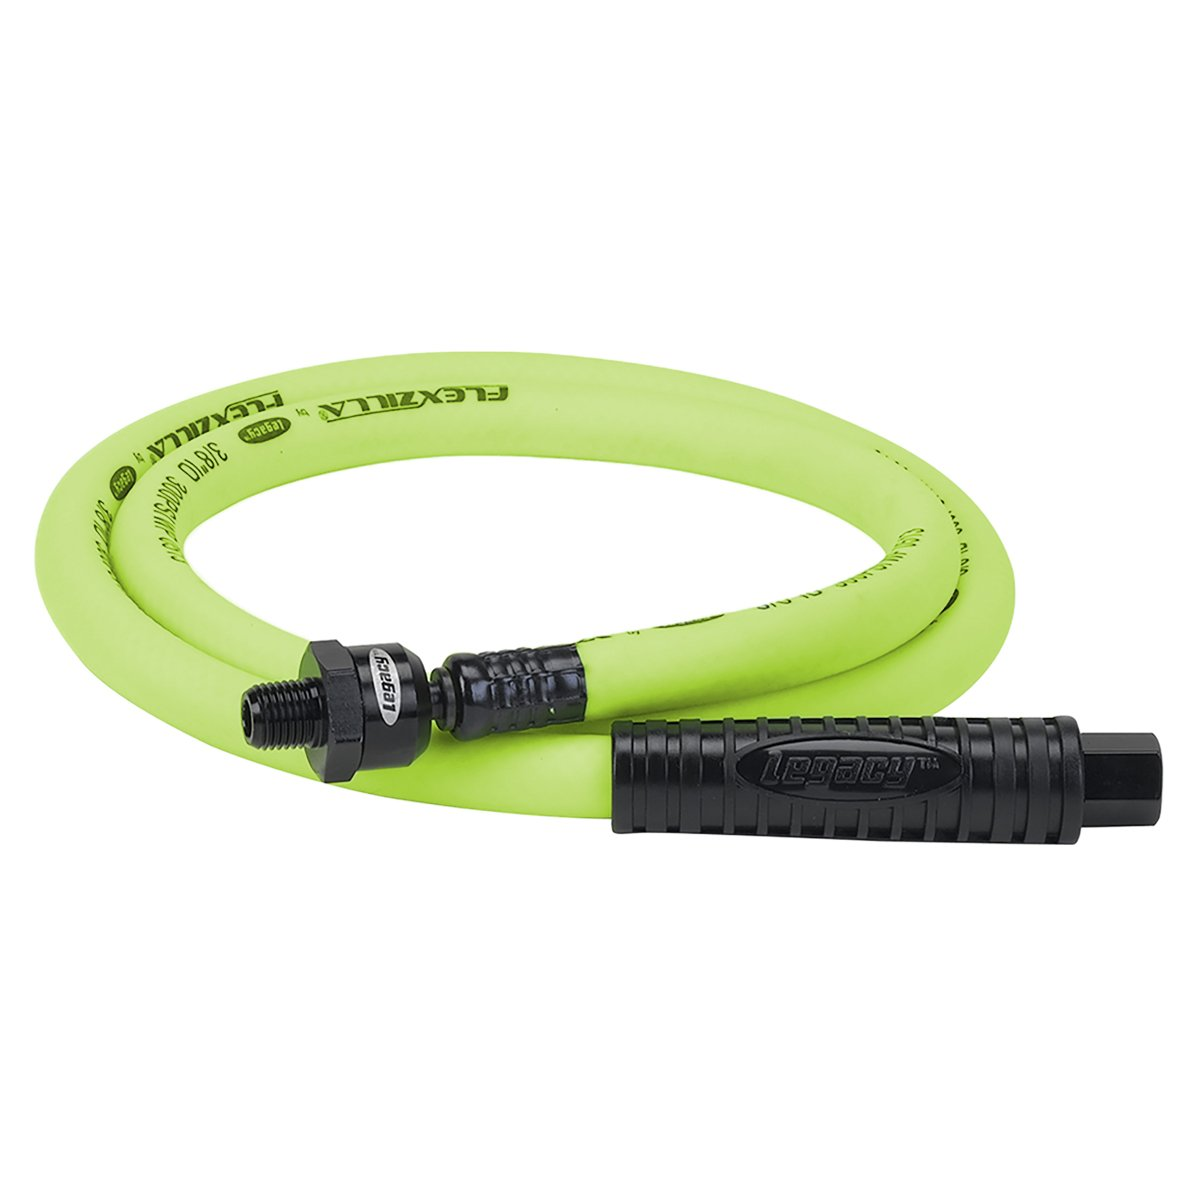 Flexzilla Ball Swivel Whip Air Hose, 3/8 in. x 4 ft. (1/4 in. MNPT Ball Swivel x 1/4 in. FNPT Ends), Heavy Duty, Lightweight, Hybrid, ZillaGreen - HFZ3804YW2B